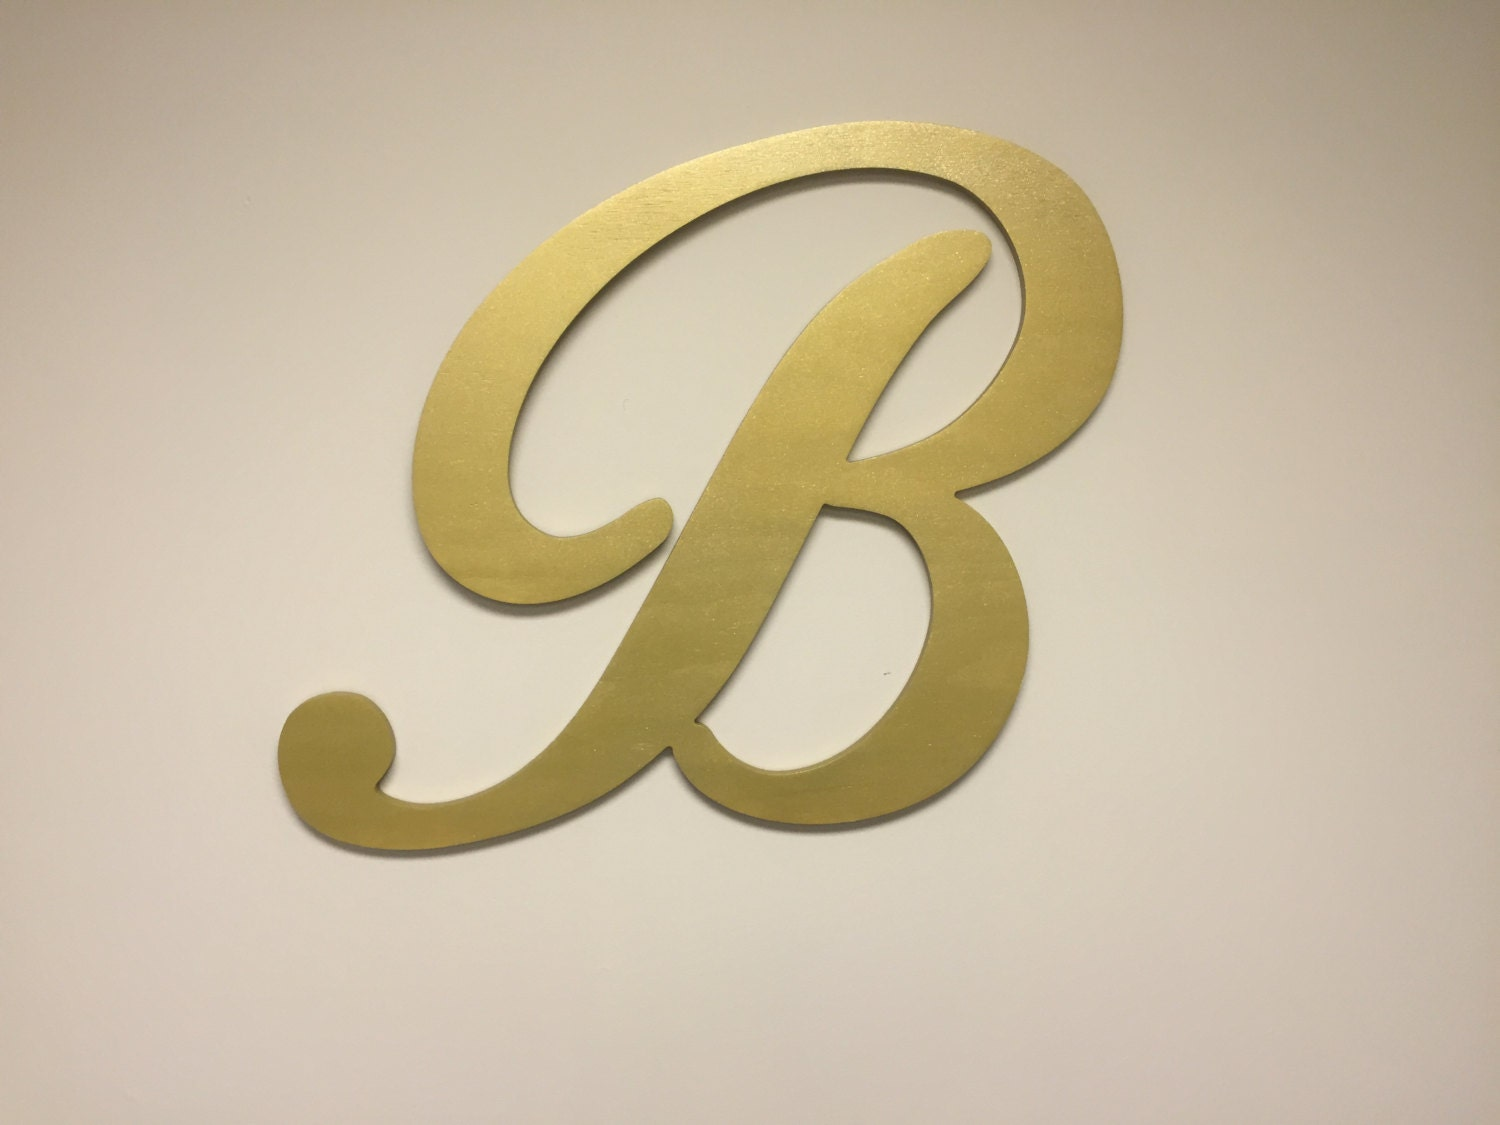 Gold letter b large letter decor wood wall letters by howdyowl for Large gold letters for walls